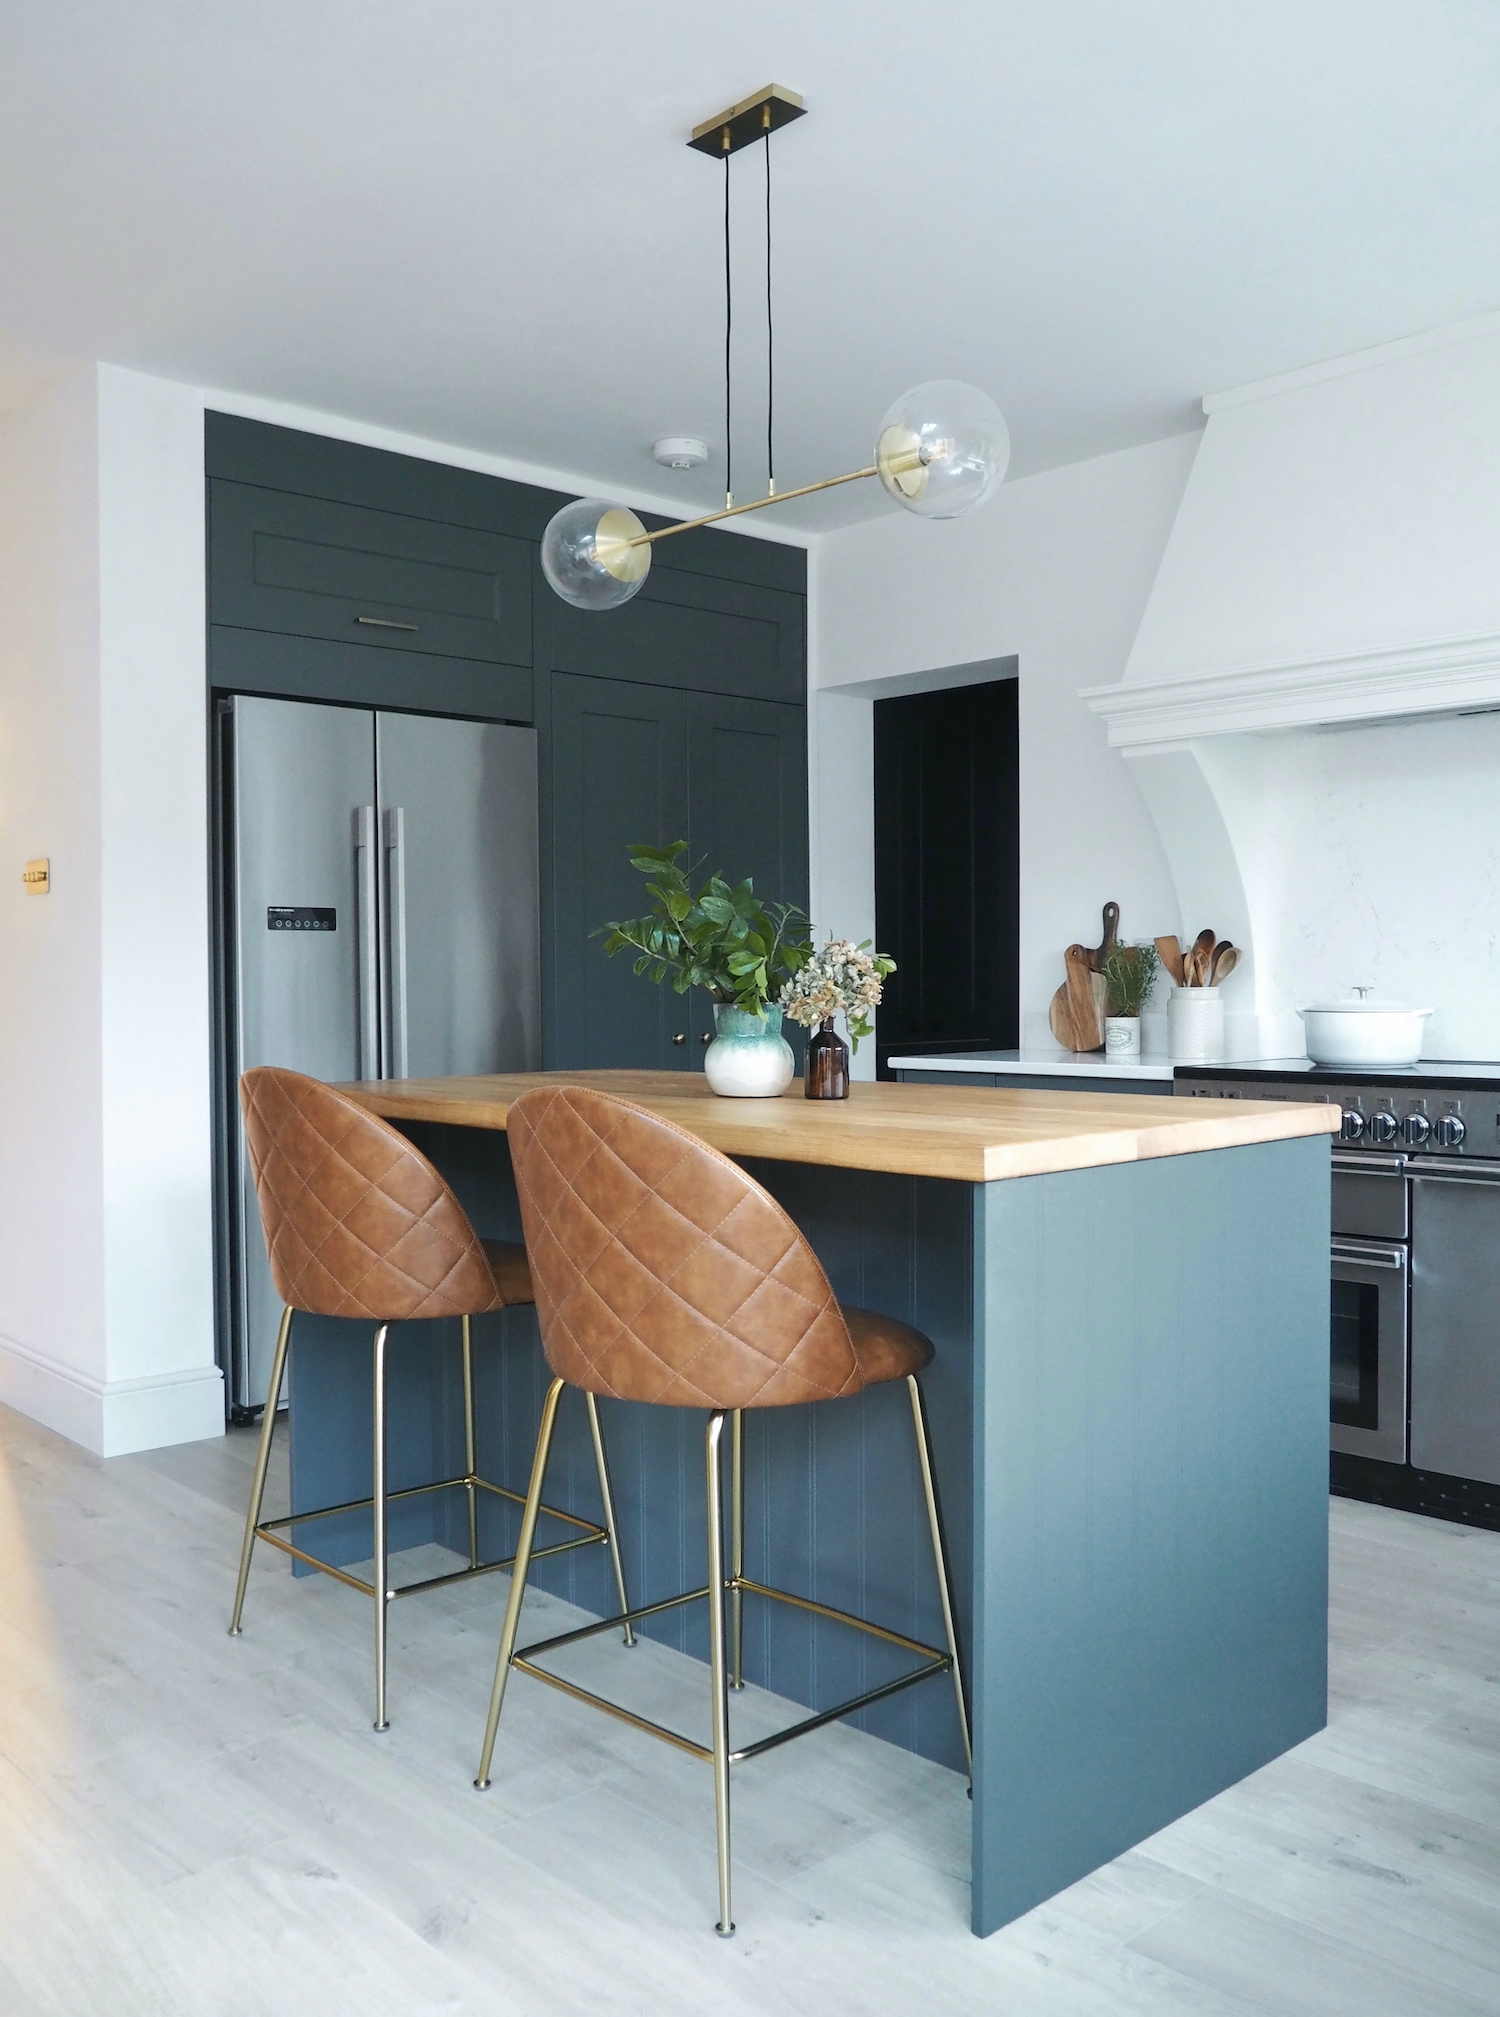 First Sense Interiors - blue shaker kitchen with secret walk-in pantry